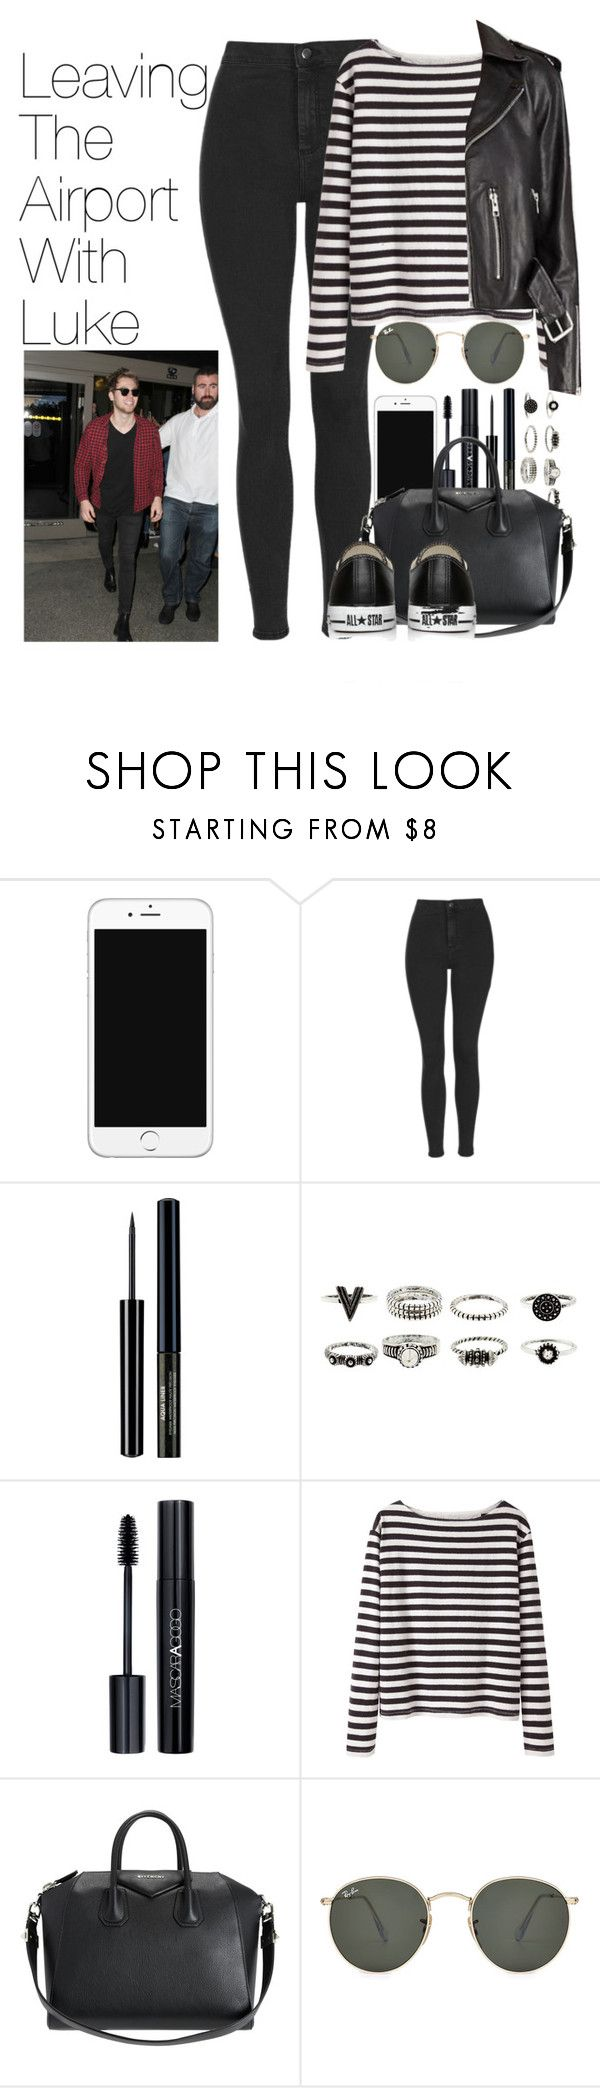 """Leaving the Airport with Luke"" by onedirectionimagineoutfits99 ❤ liked on Polyvore featuring Topshop, Diego Dalla Palma, Wood Wood, Givenchy, Ray-Ban and Converse"